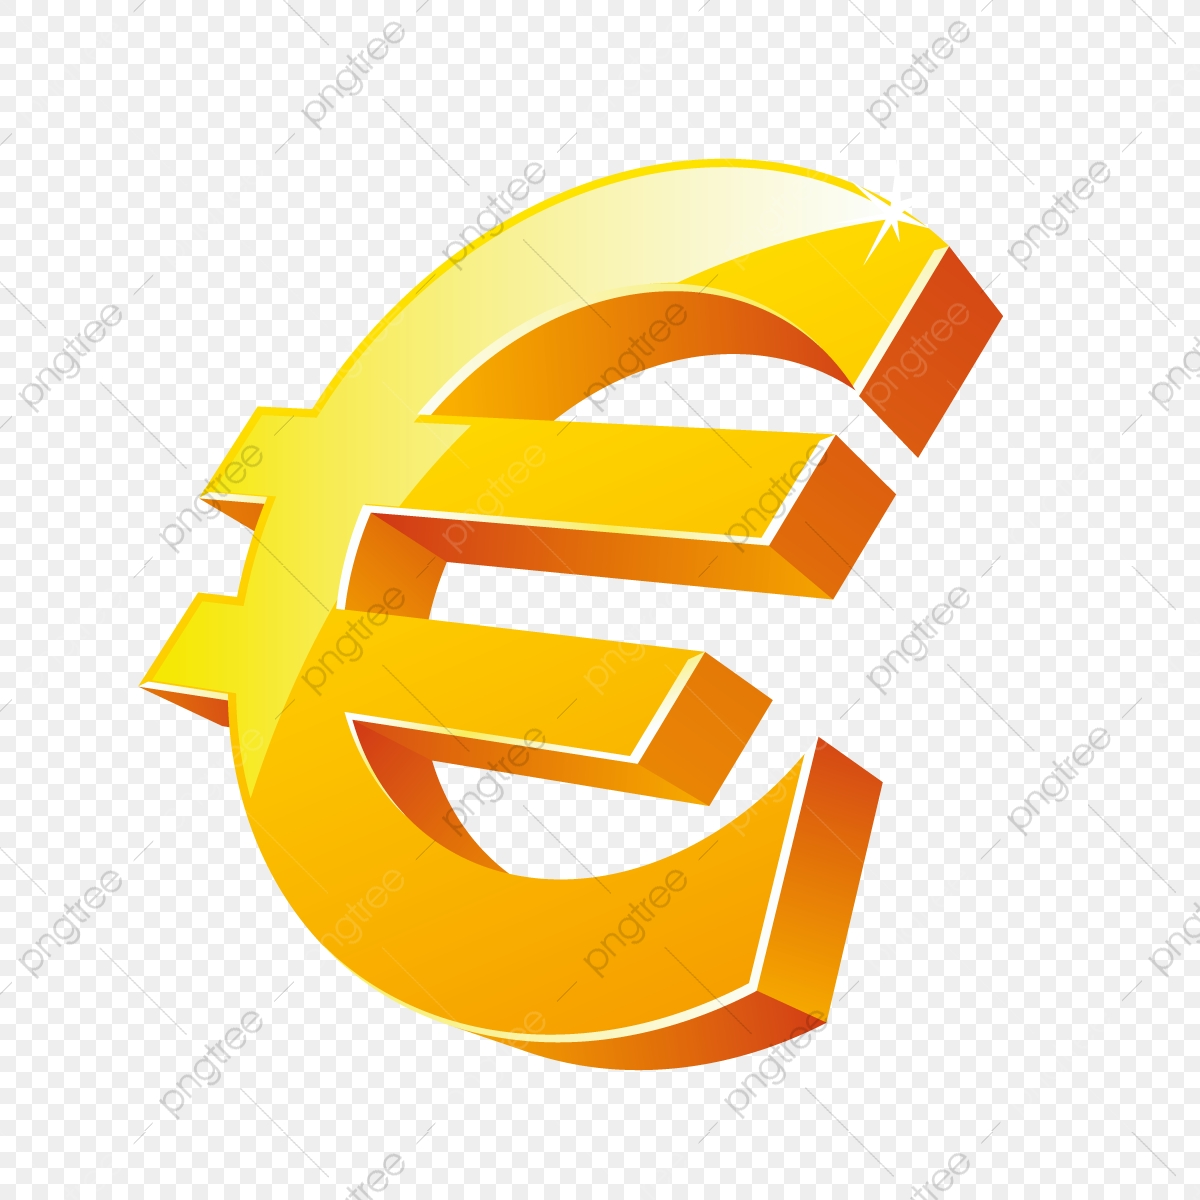 euro golden logo euro golden logo png and vector with transparent background for free download https pngtree com freepng euro golden logo 3718297 html